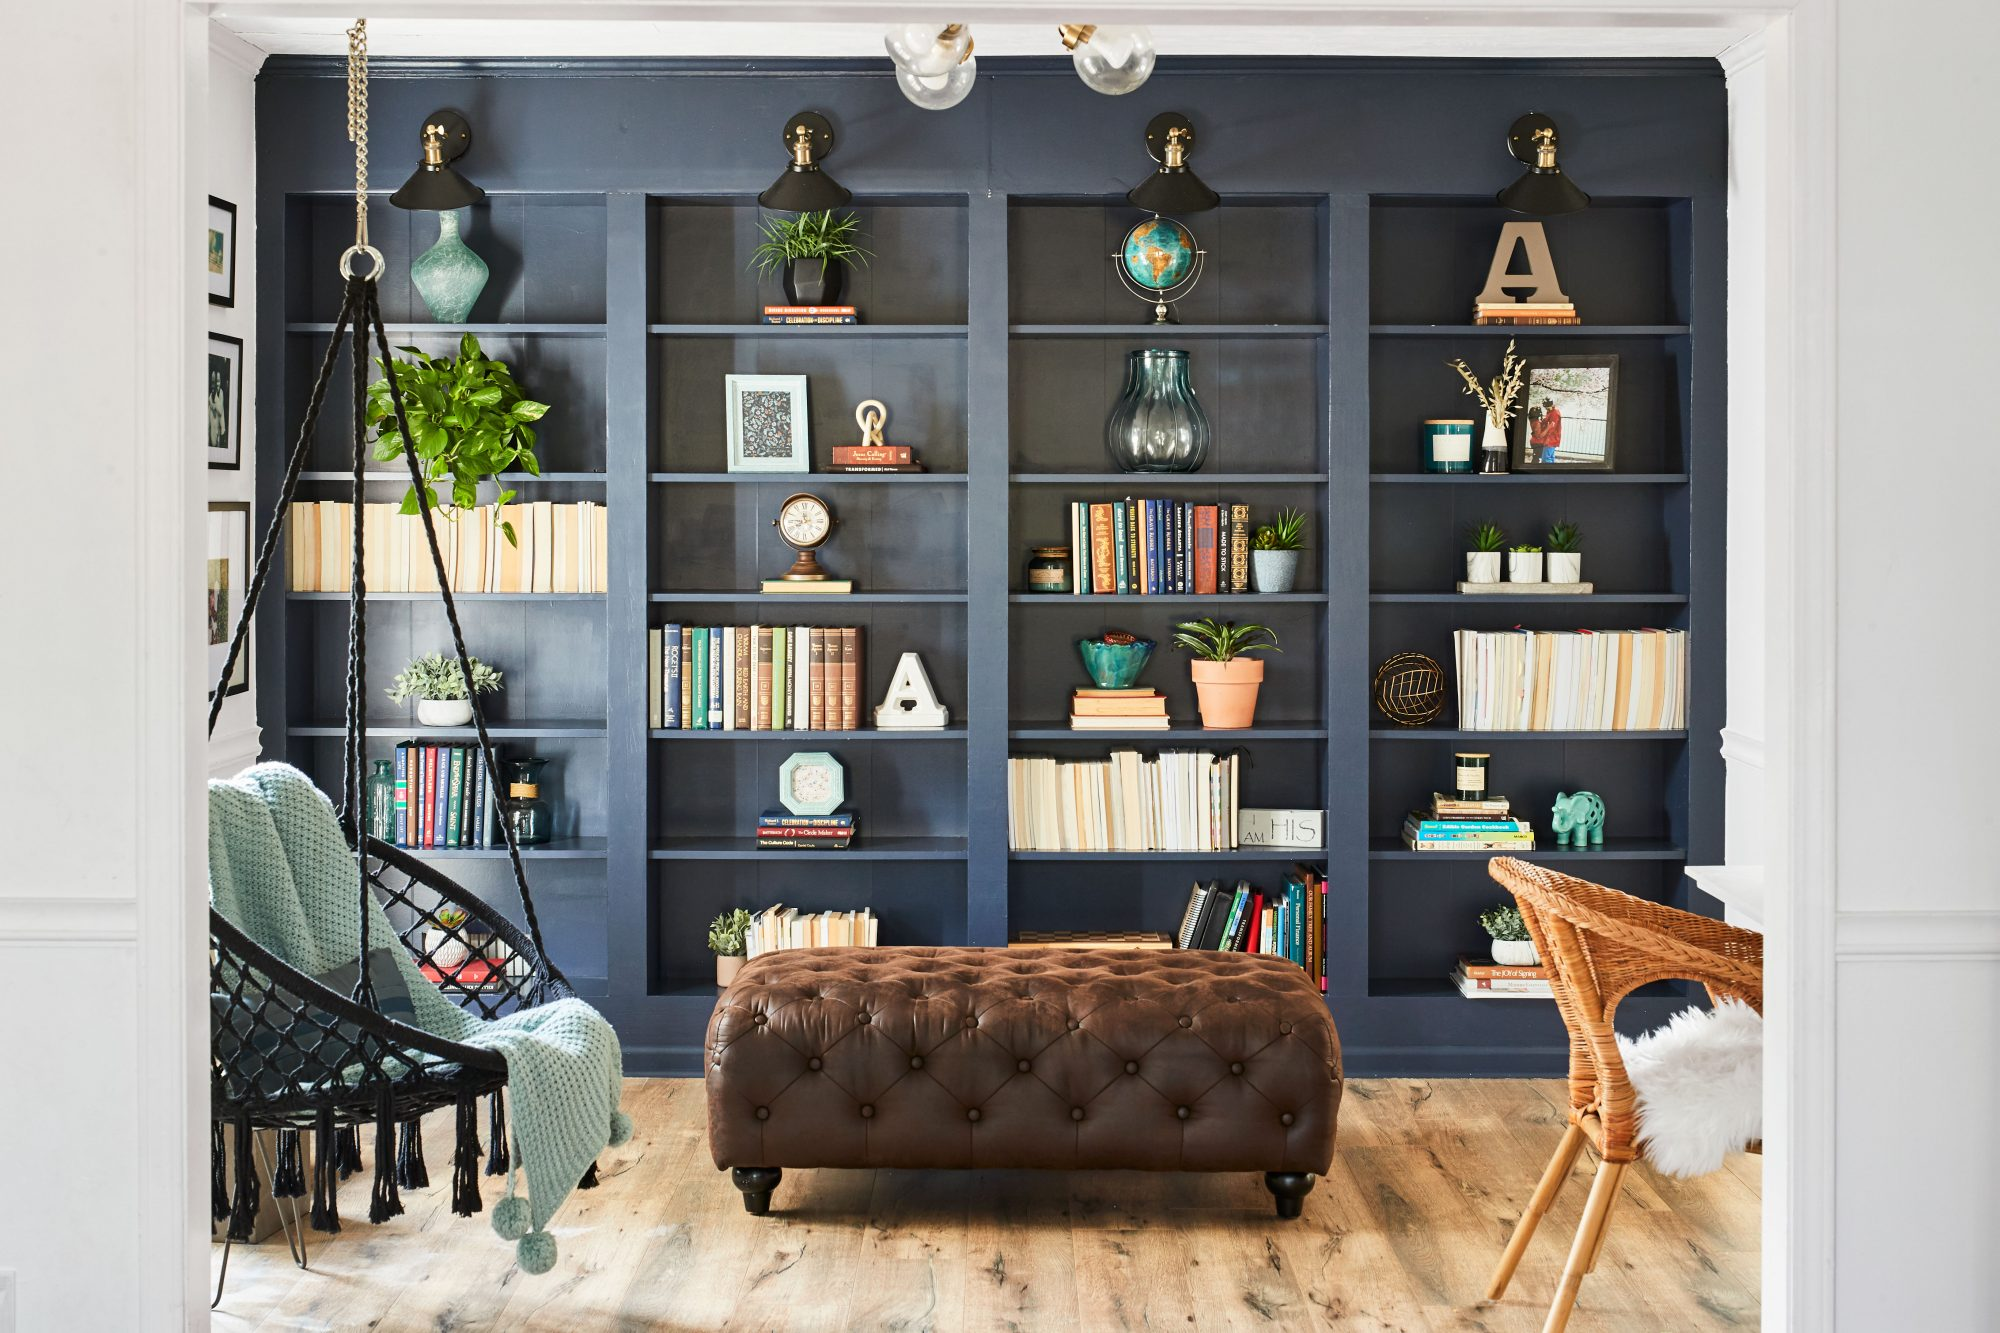 Modern DIY built in bookshelf wall with hanging chair